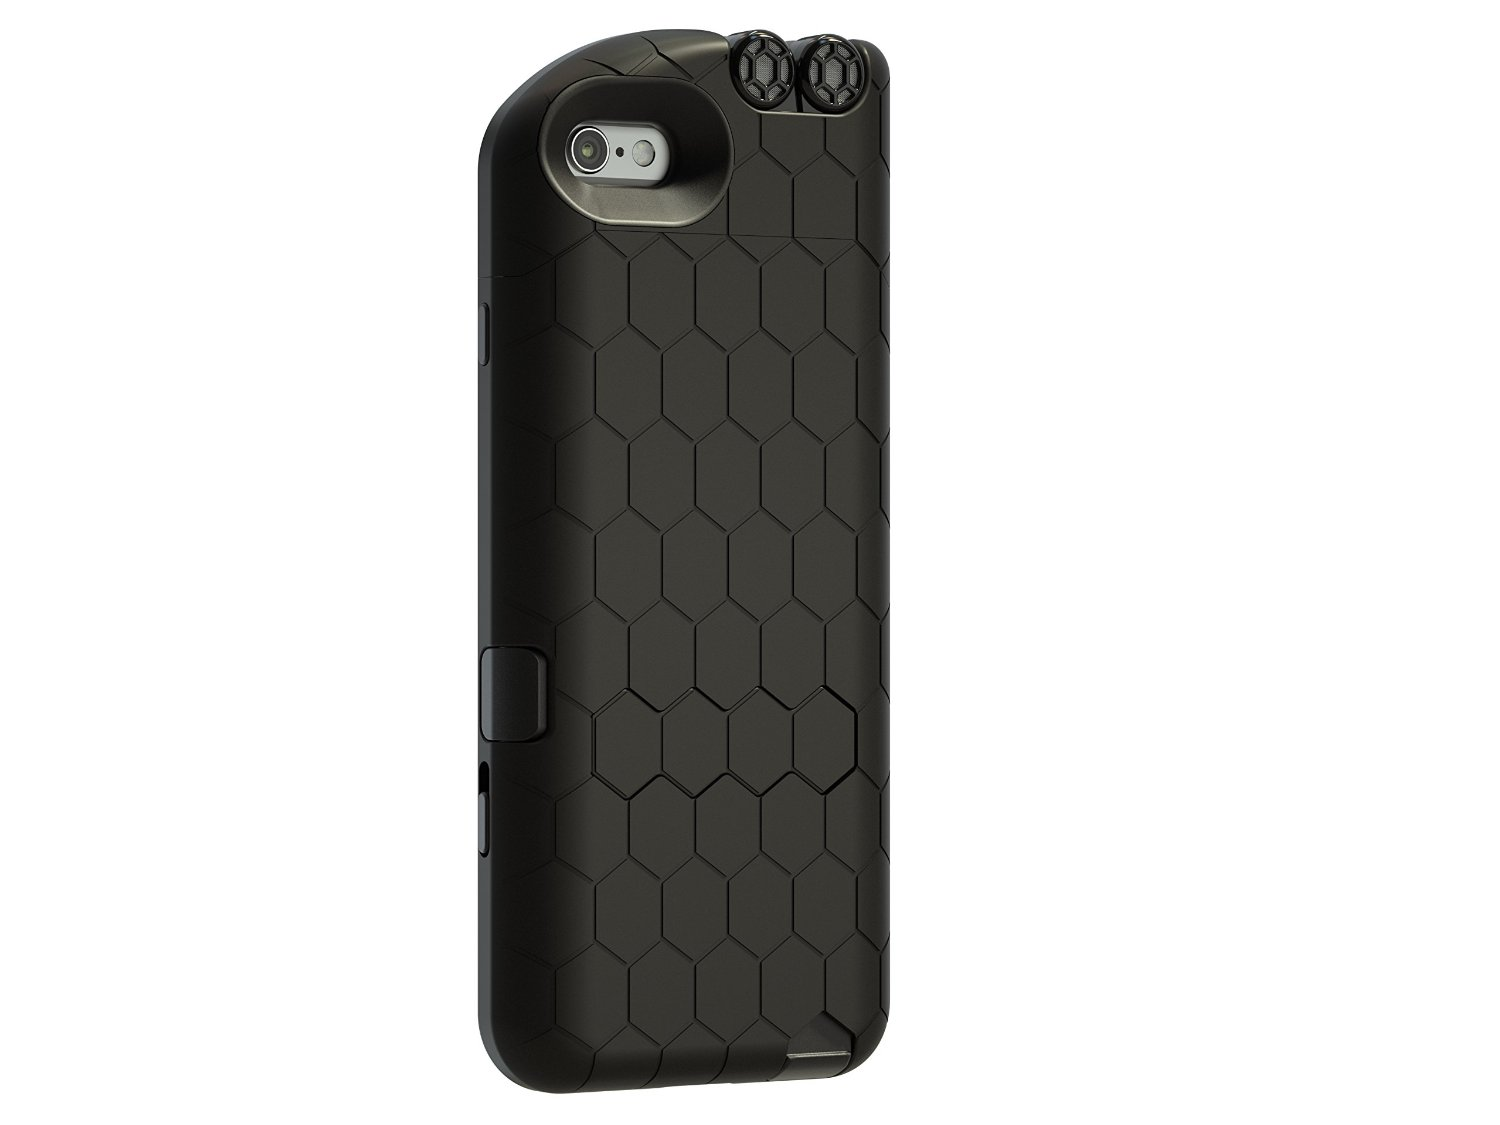 Turtlecell iphone case